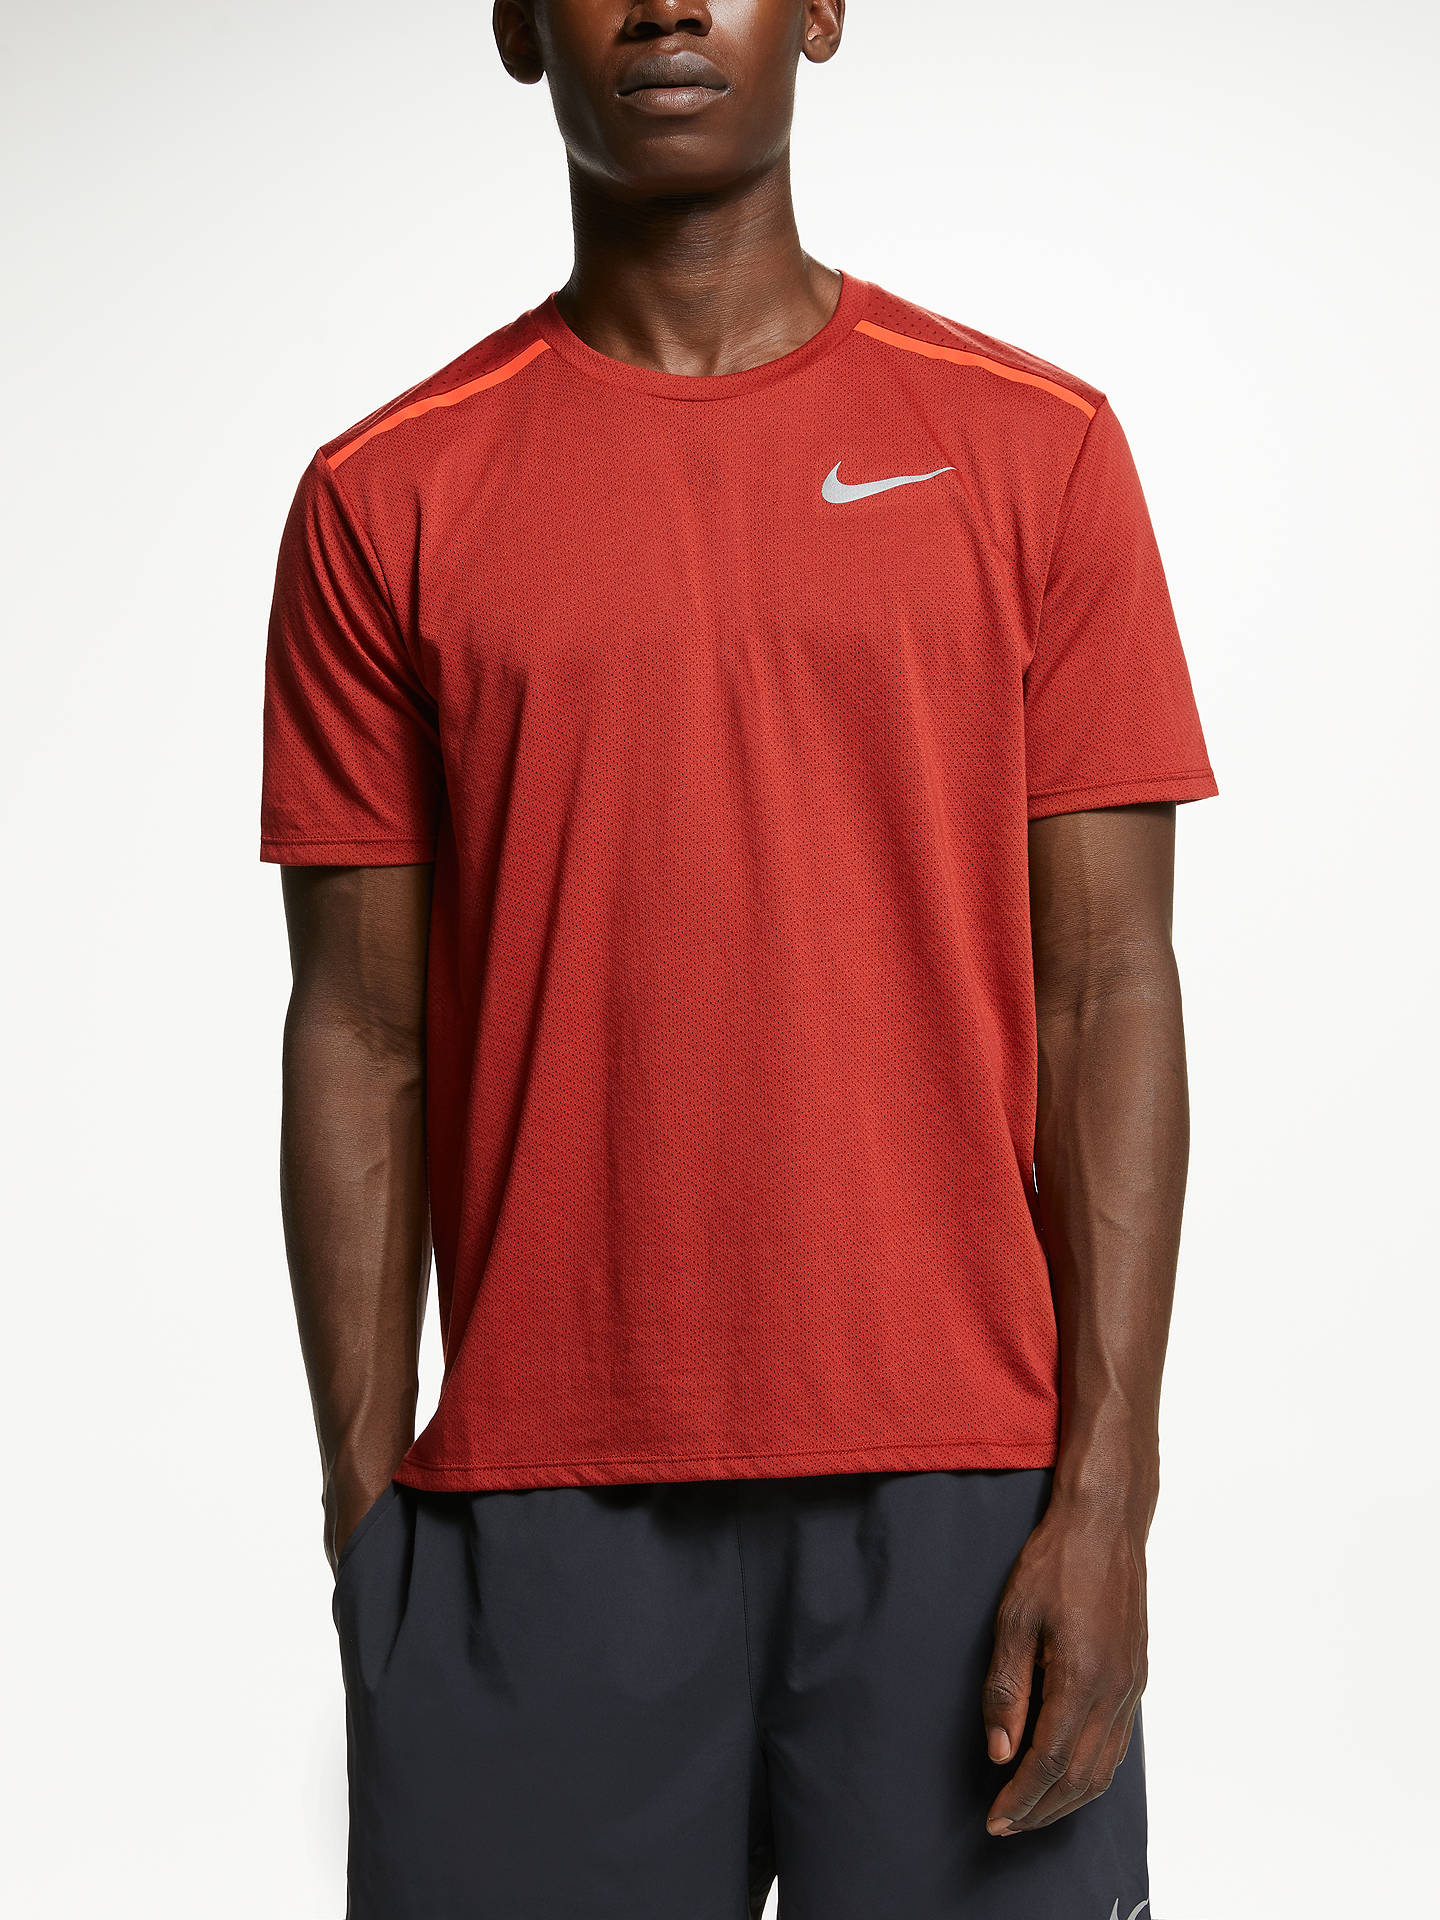 save up to 80% look for the latest Nike Breathe Rise 365 Short Sleeve Running Top at John Lewis ...